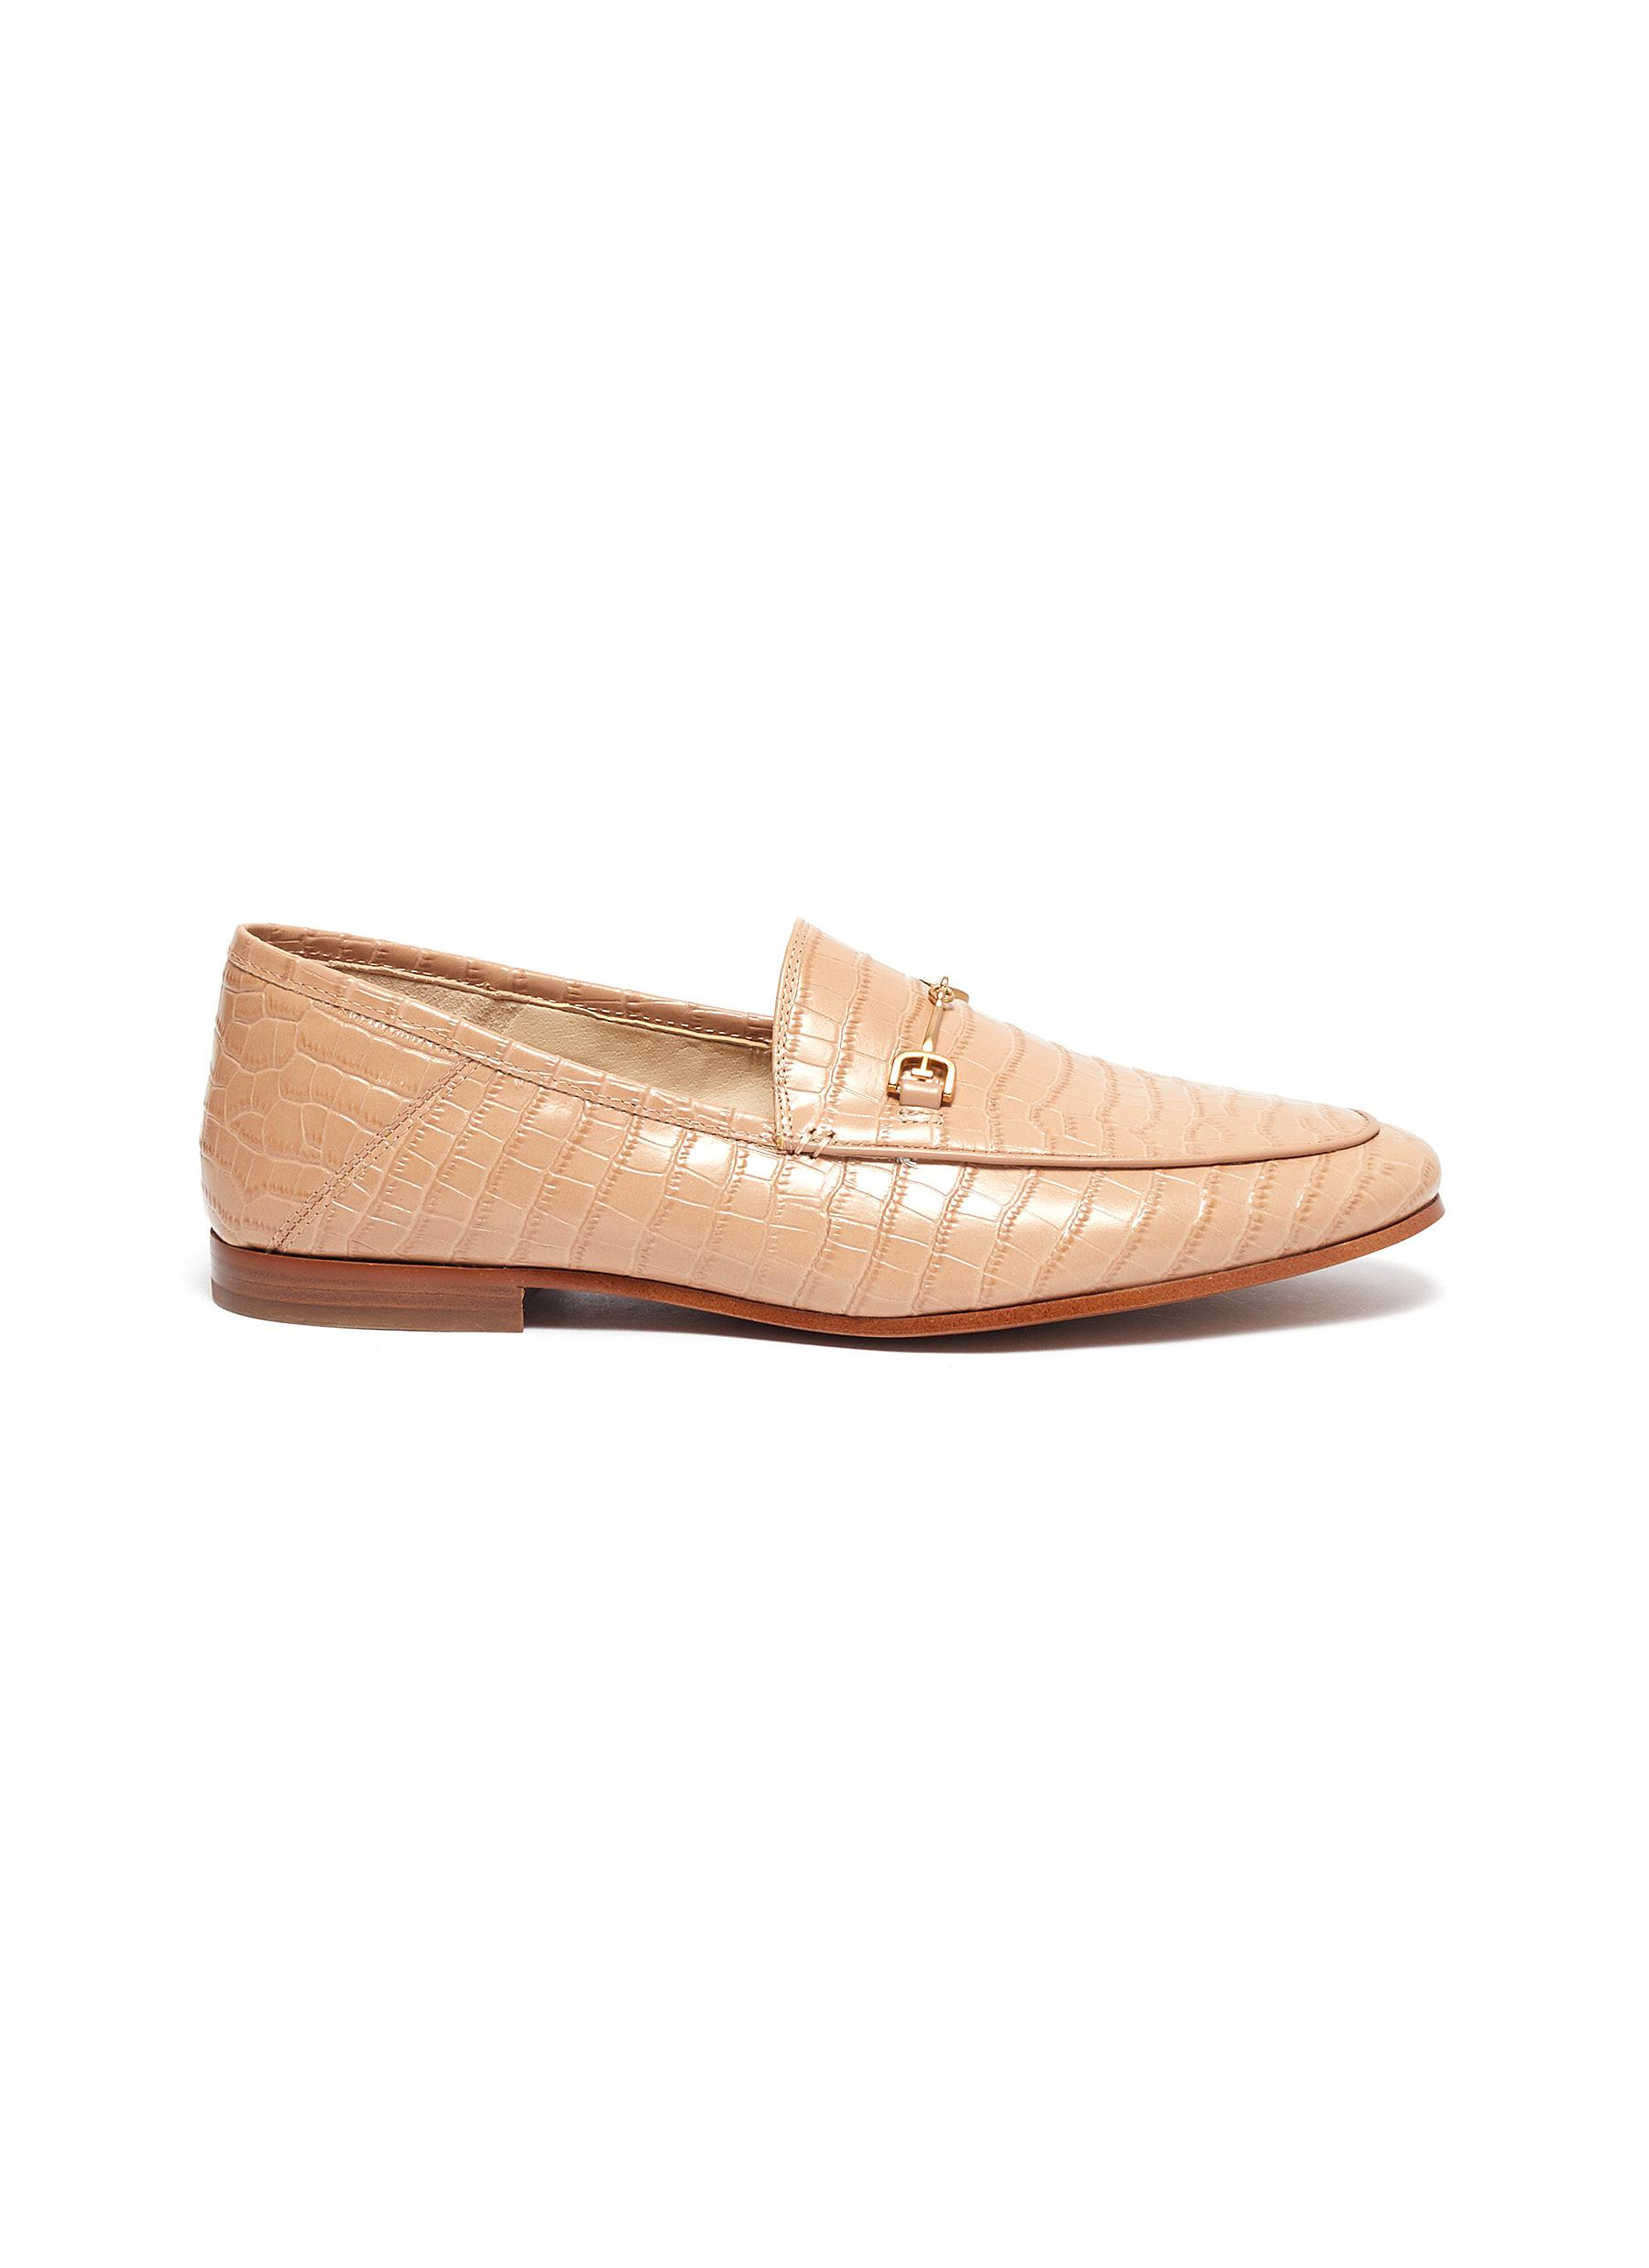 Sam Edelman Flats Loraine croc embossed horsebit leather step-in loafers